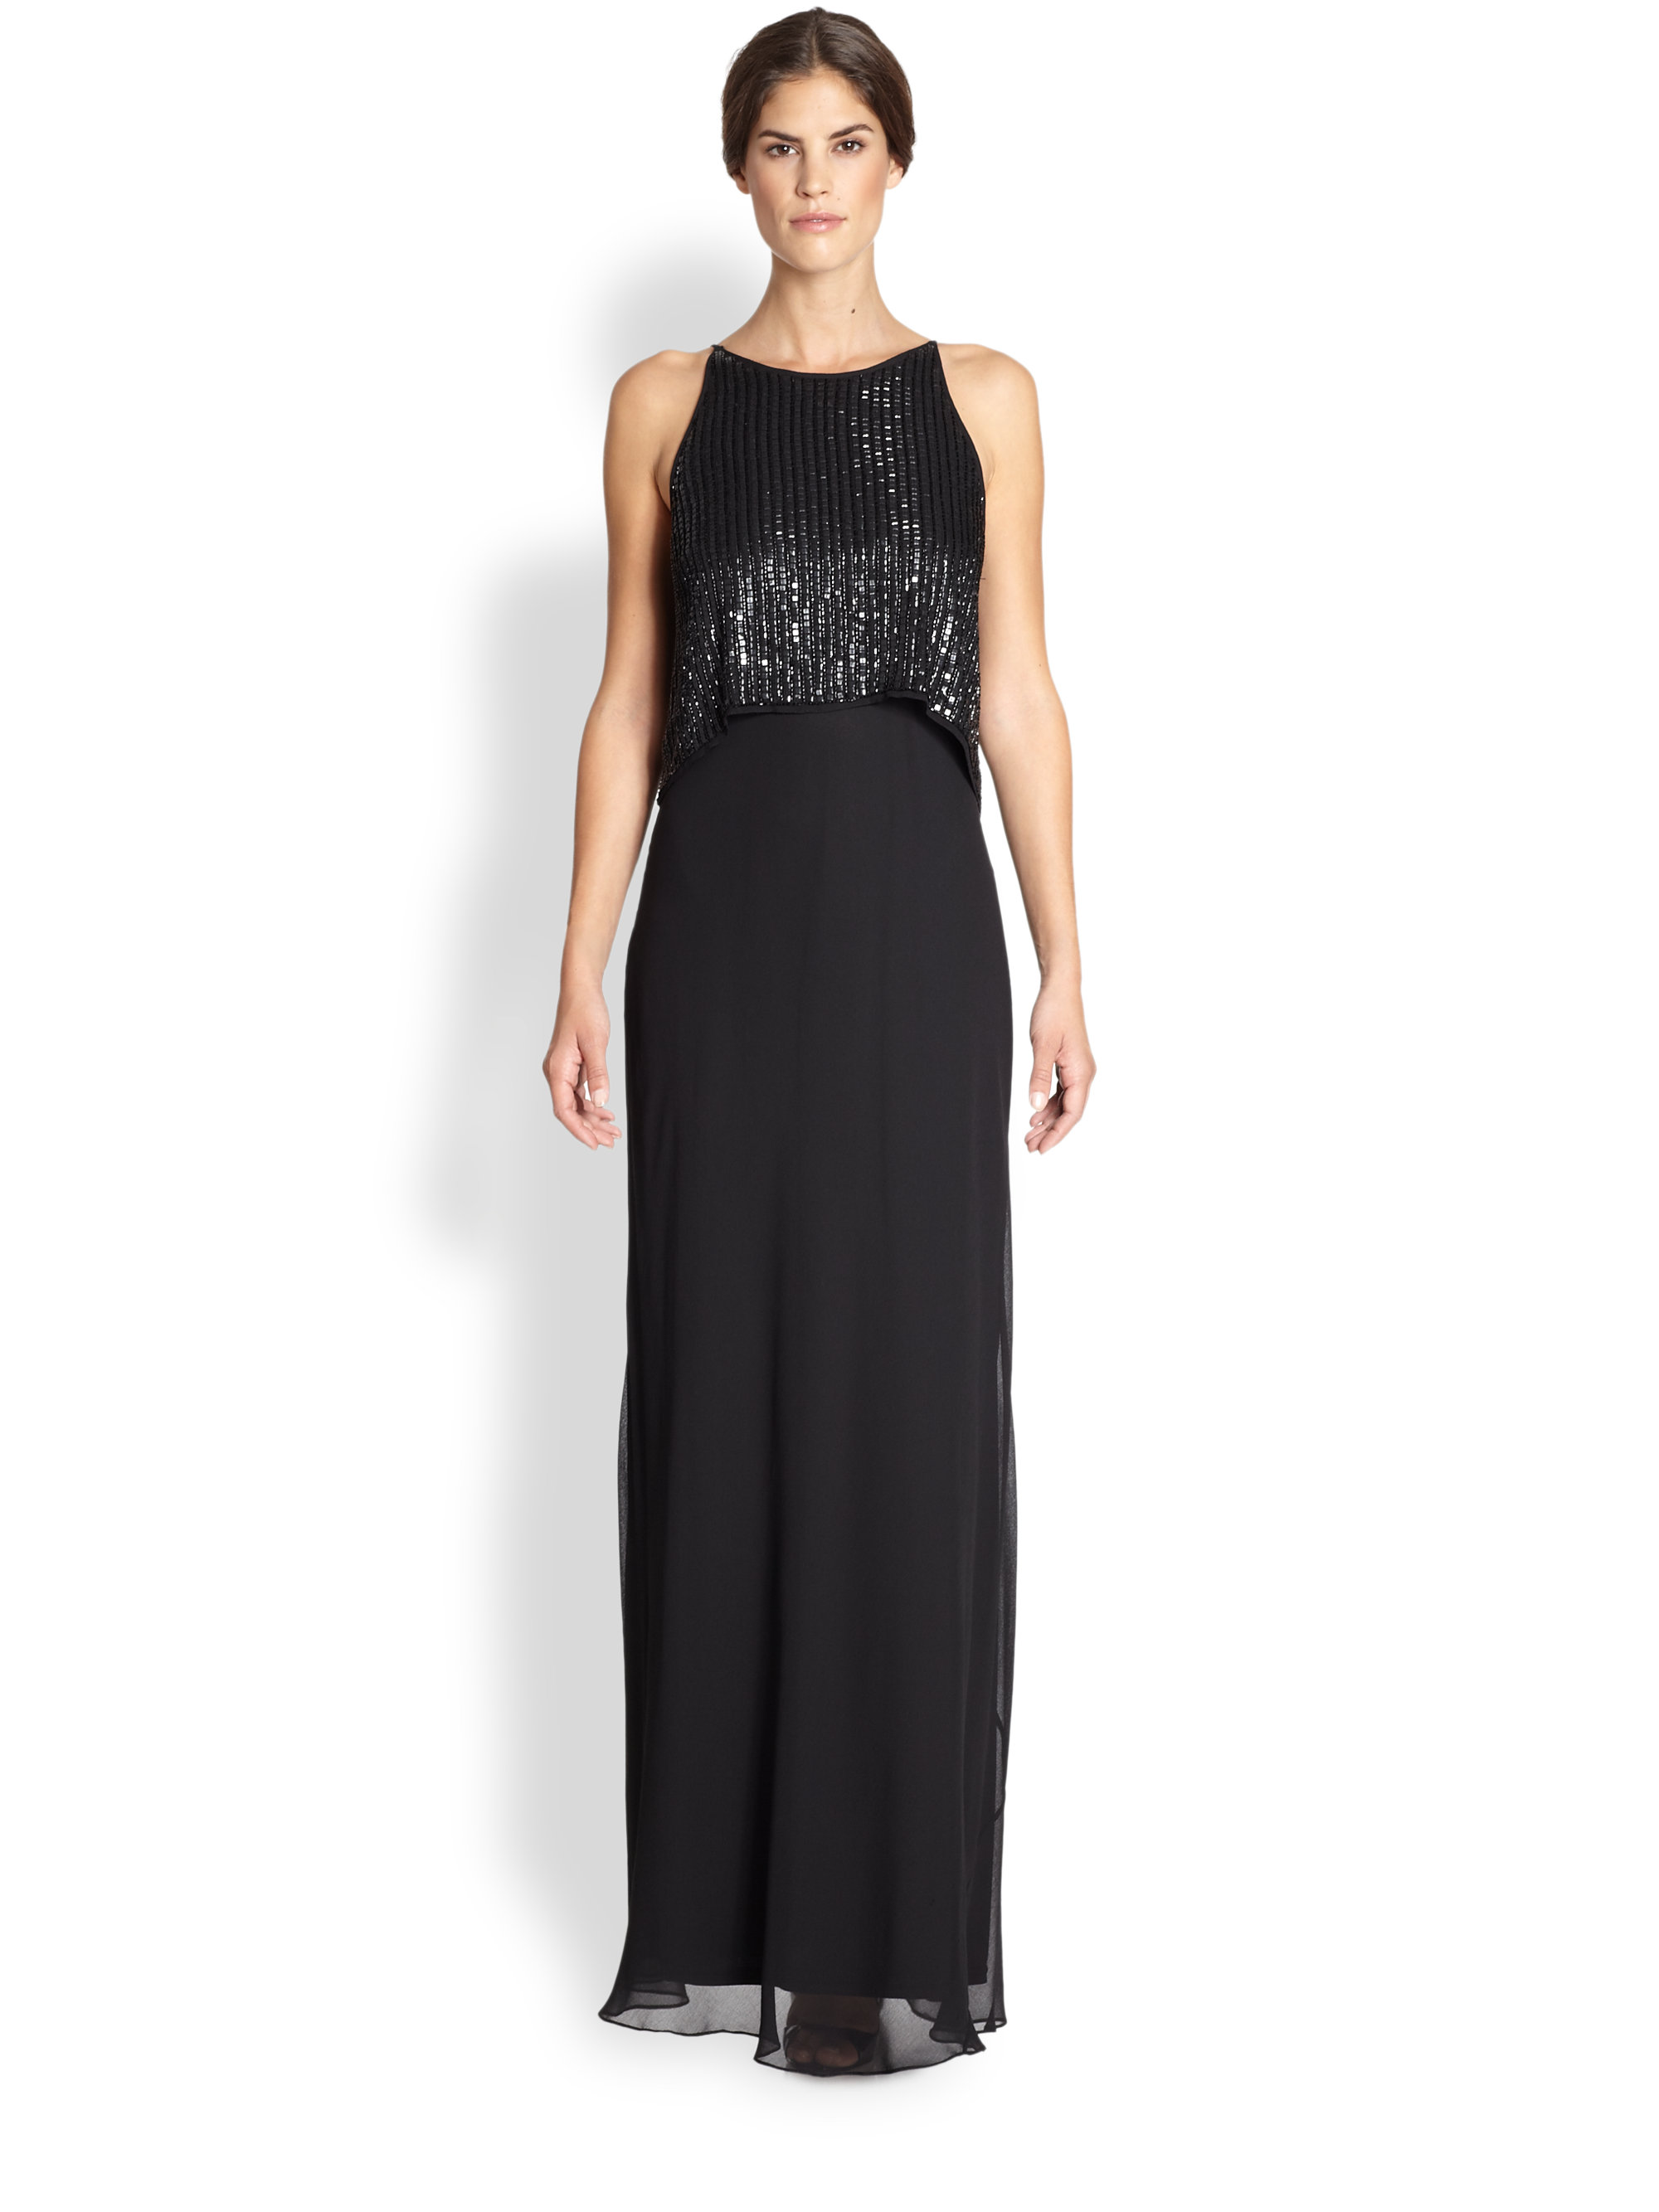 Attractive Aidan Mattox Beaded Gown Image - Wedding and flowers ...